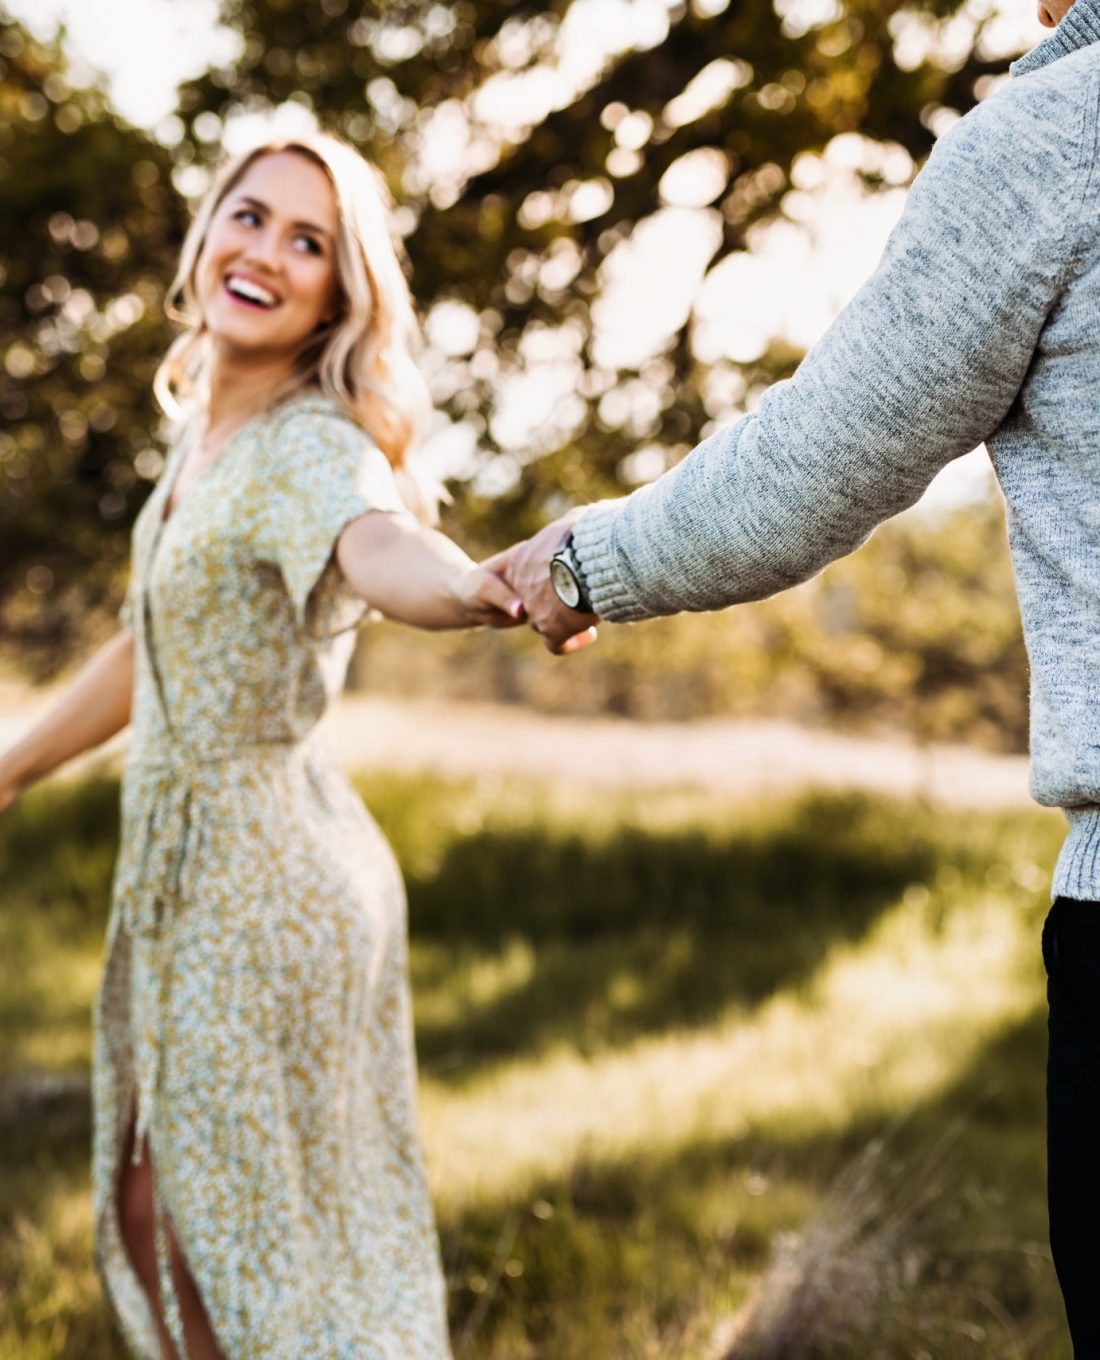 blond lady in a green dress pulls her fiance across a grassy field